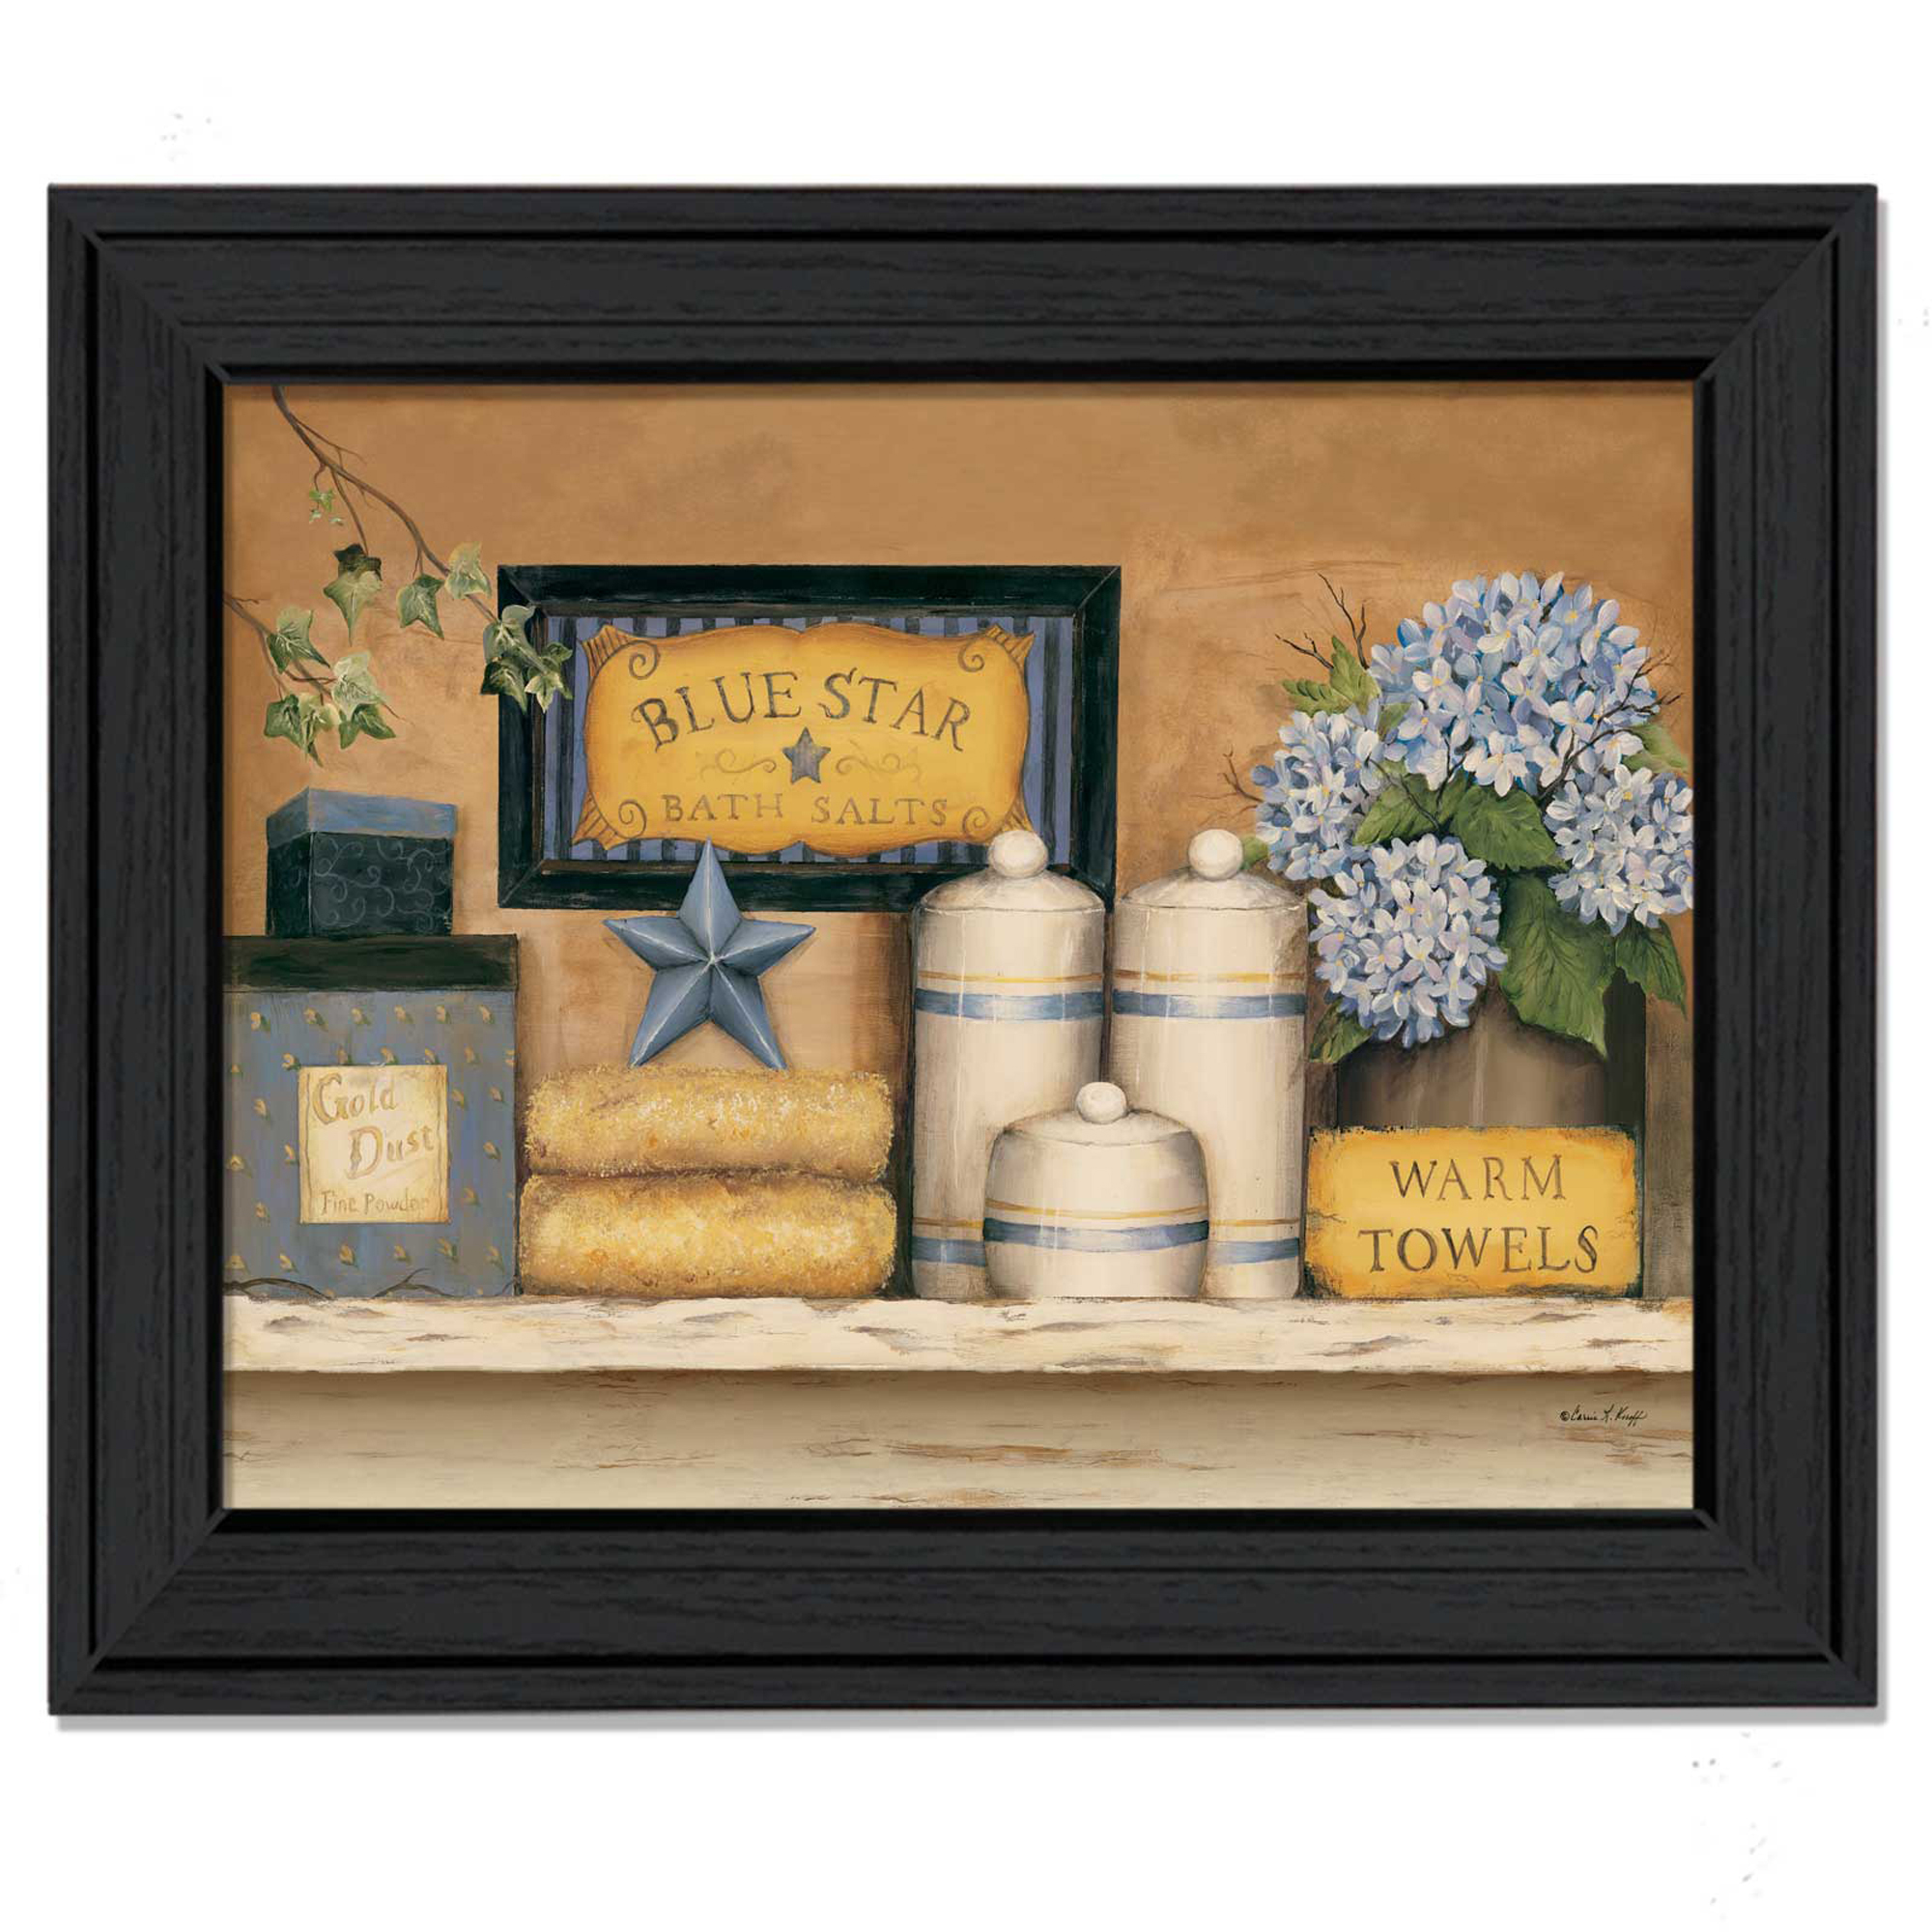 Warm Towels  by Carrie Knoff Printed Framed Wall Art